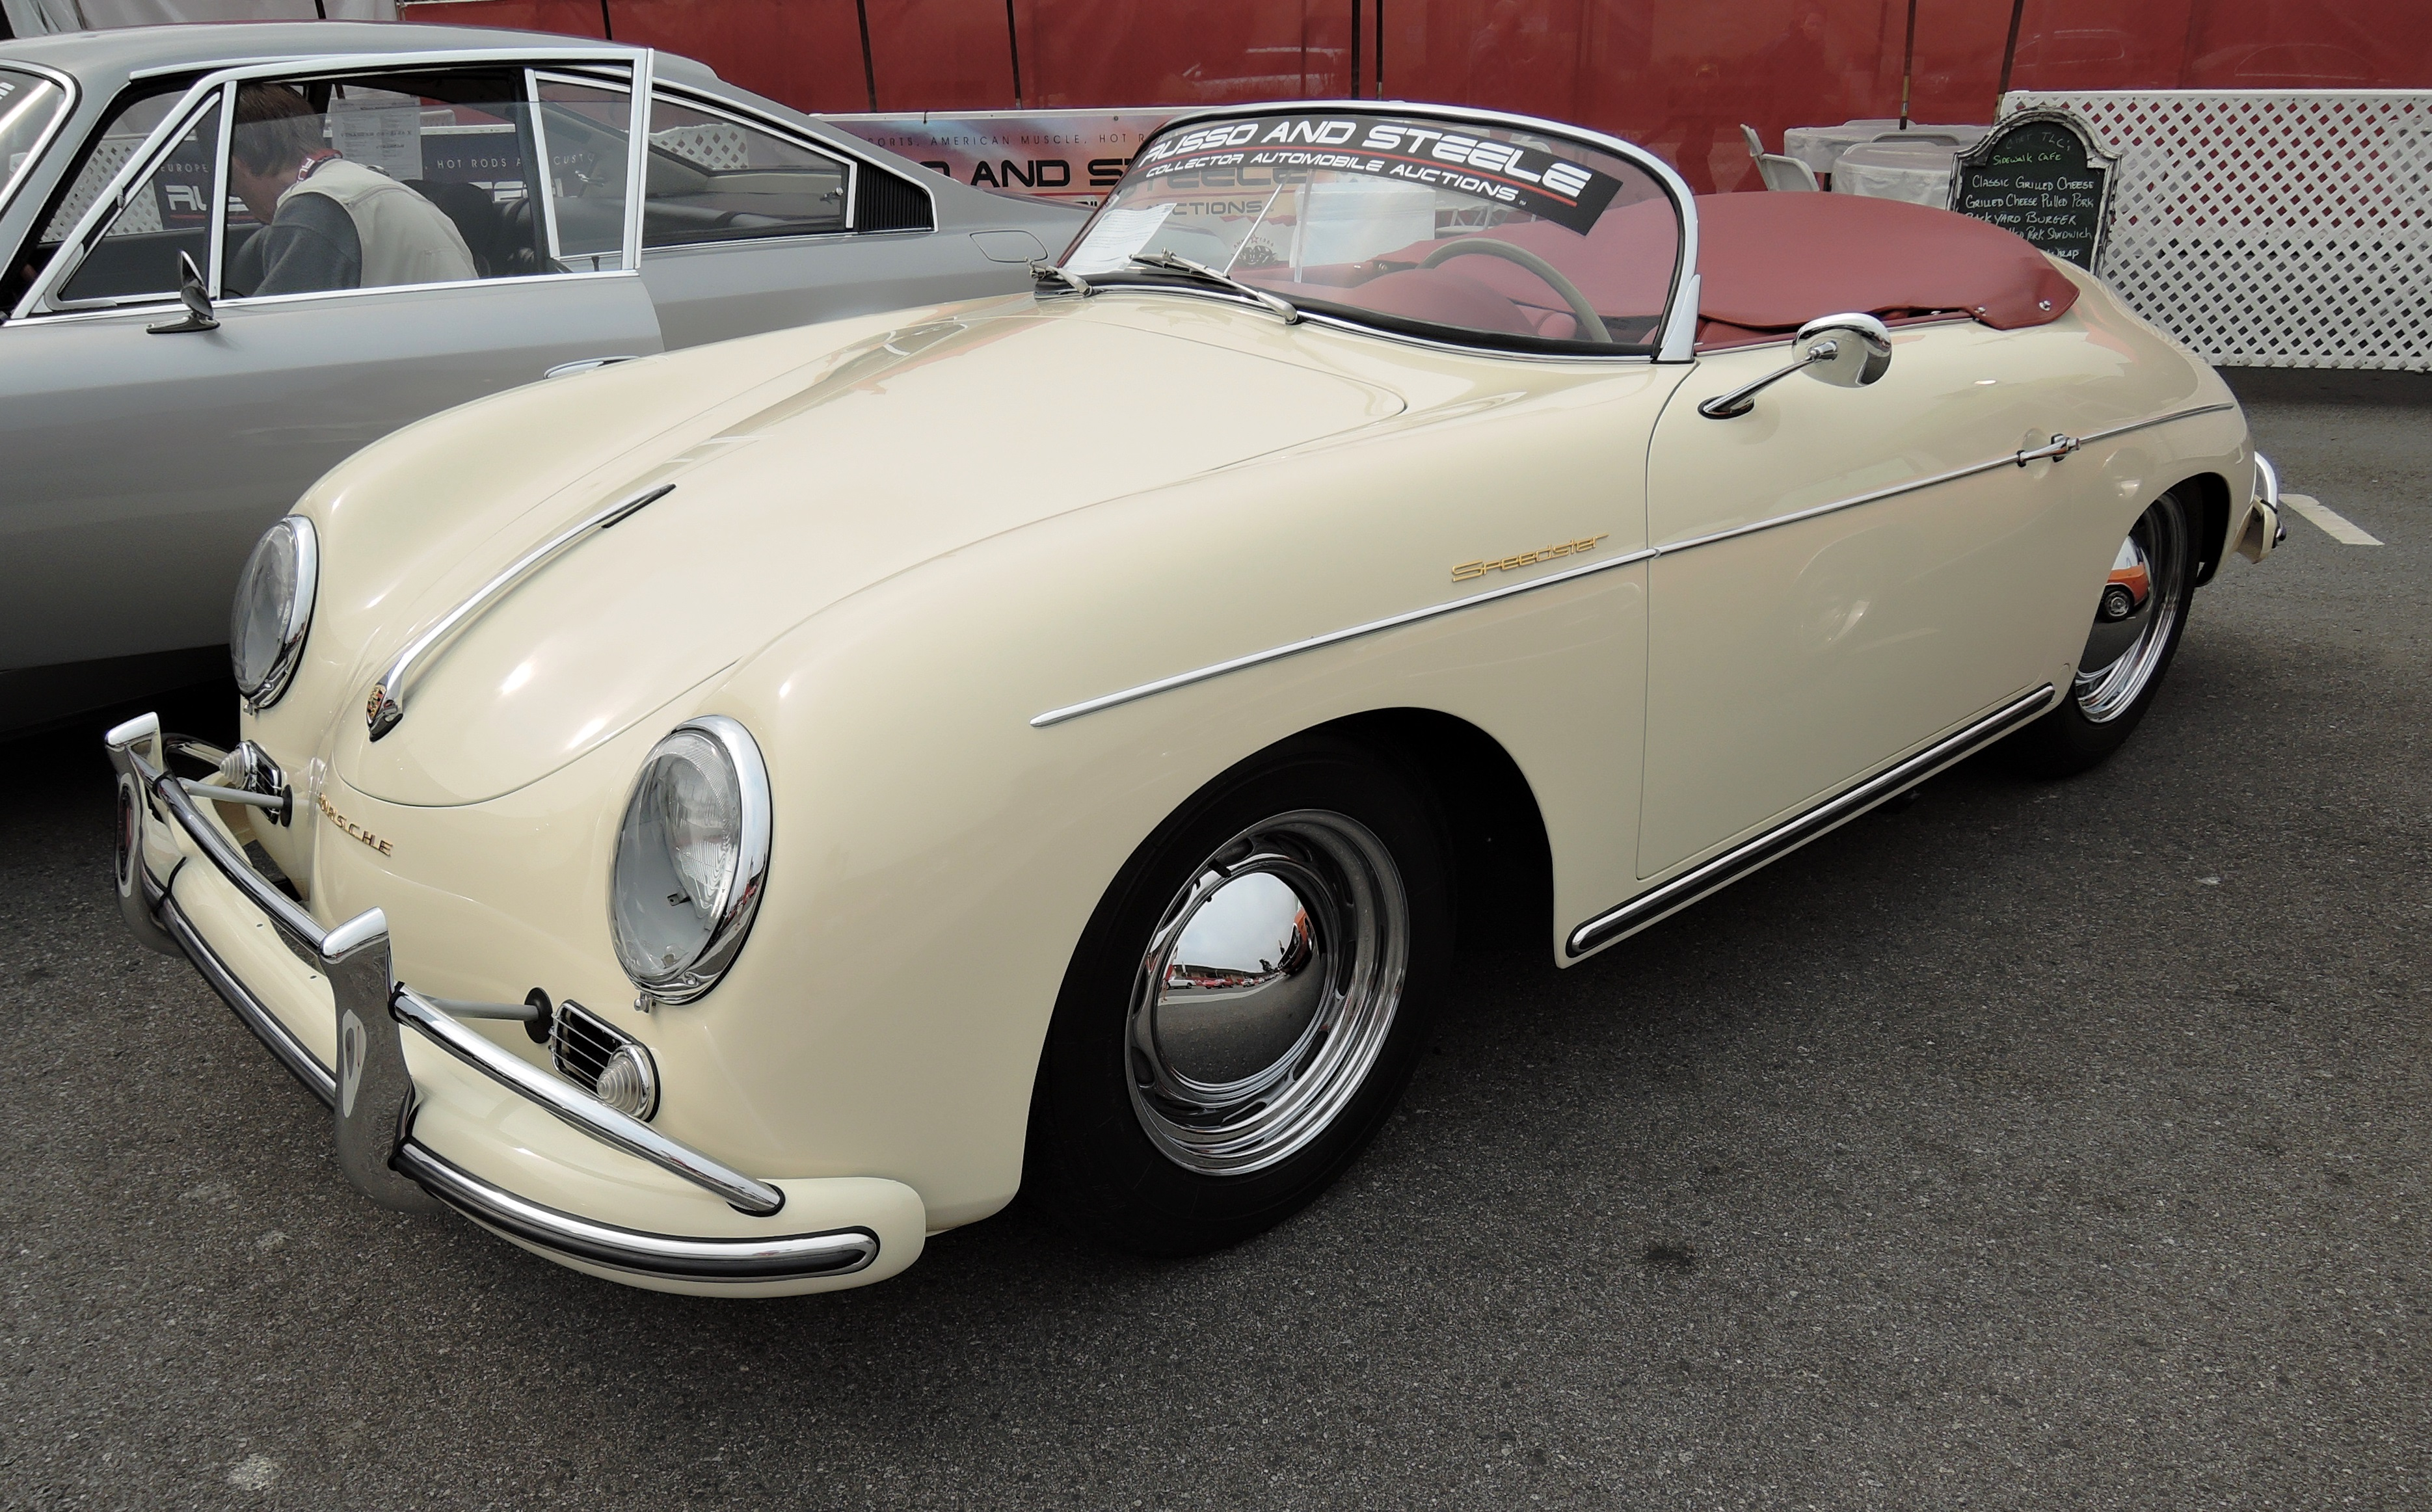 white/red 1957 Porsche 356 Speedster - monterey auctions russo & steele